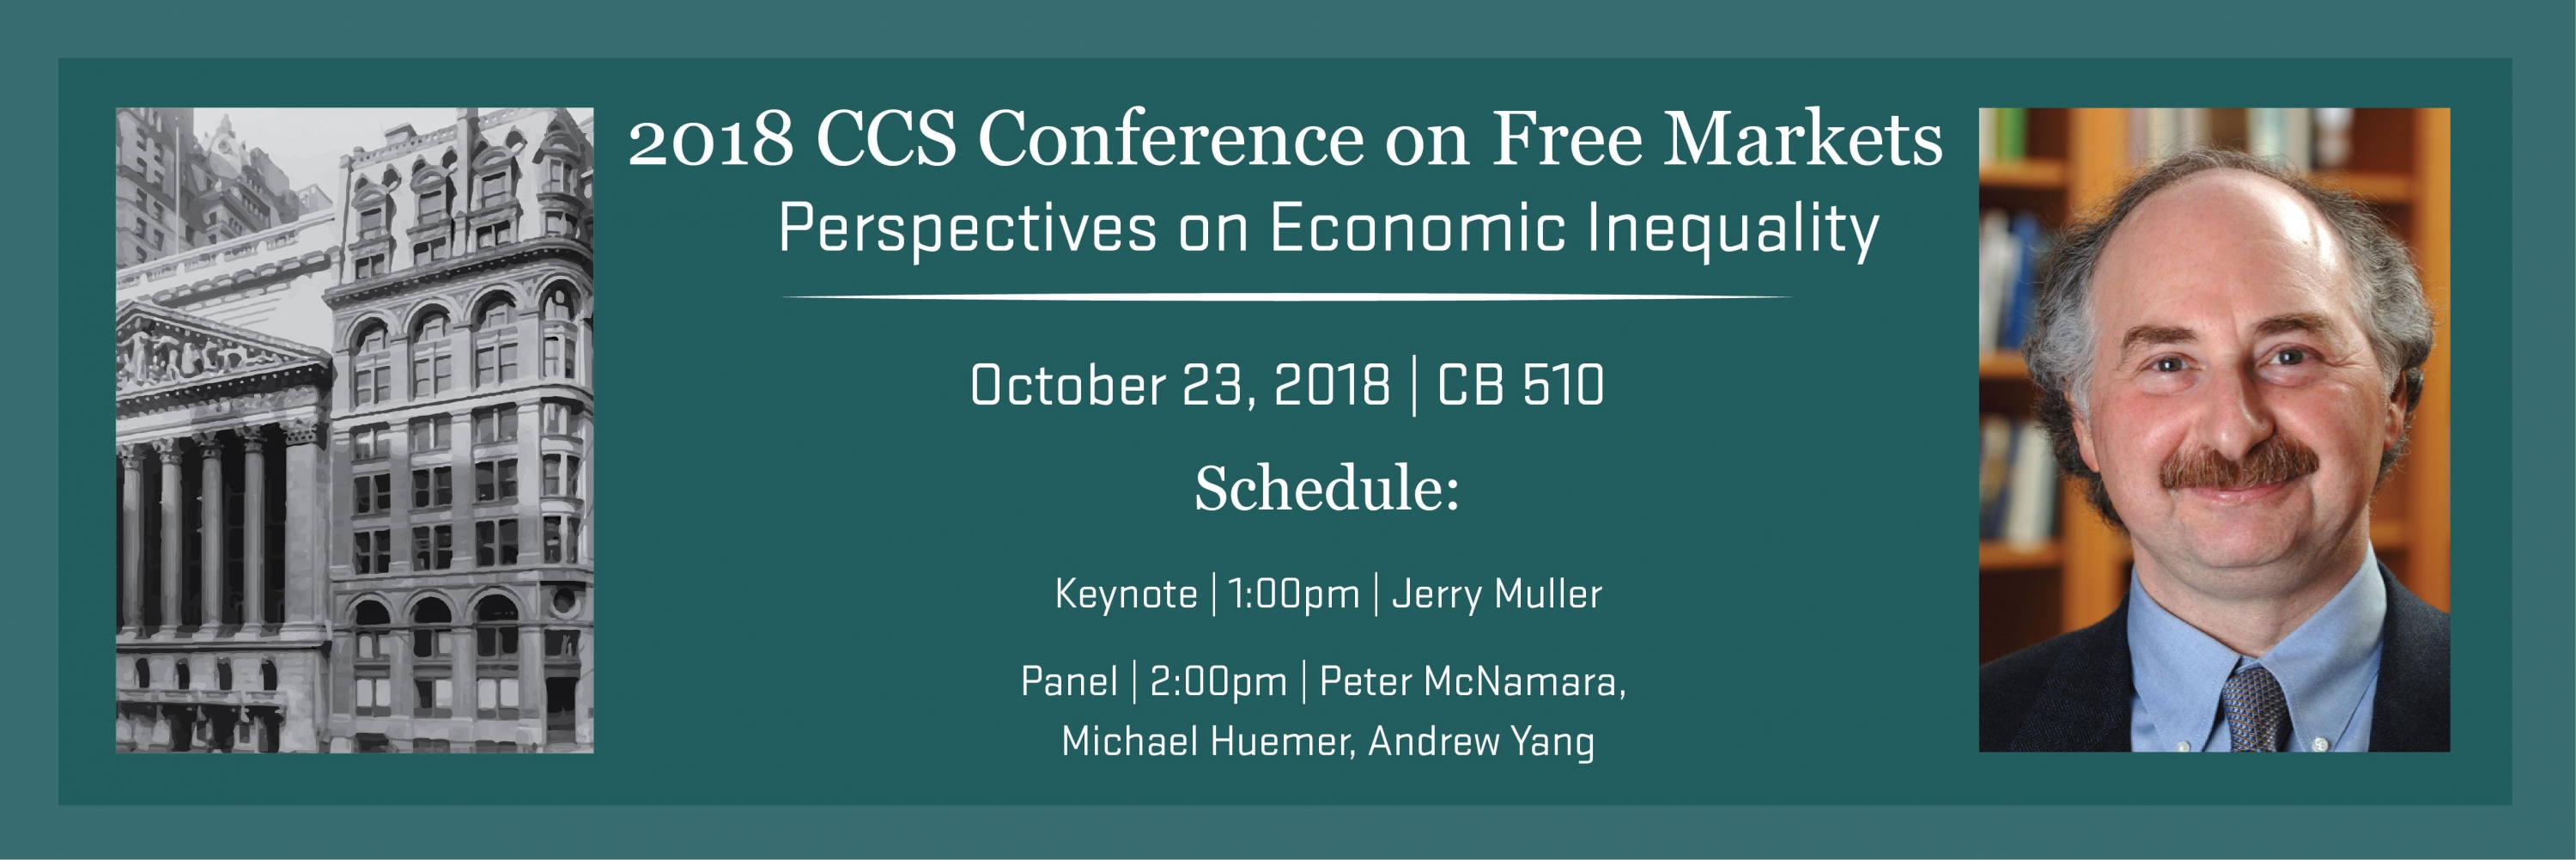 2018 CCS Conference on Free Markets